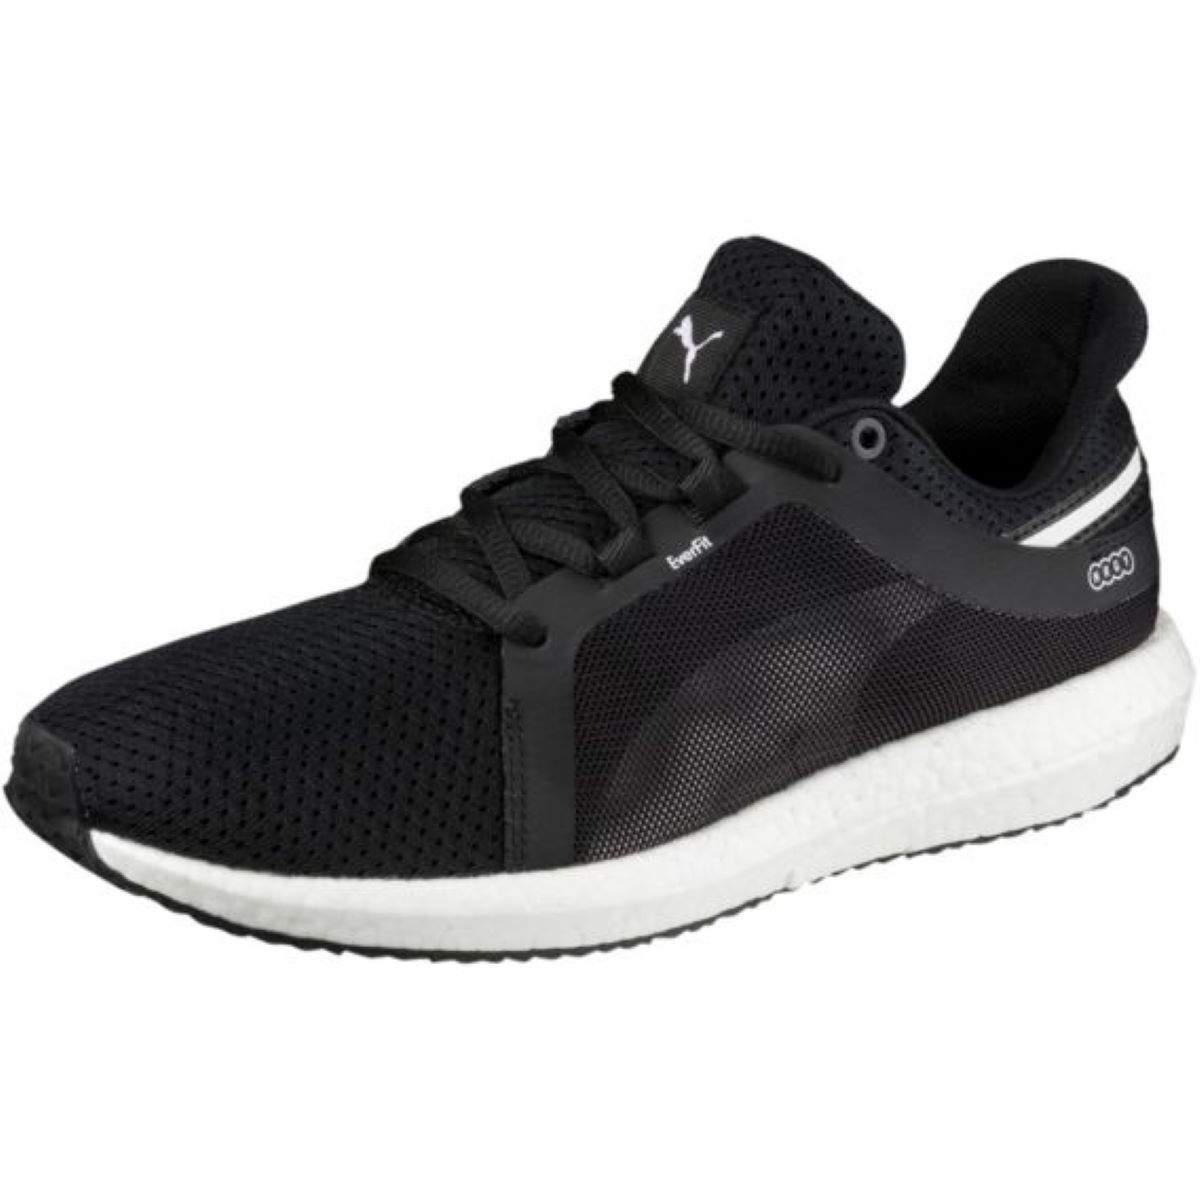 Chaussures Femme Puma Mega NRGY Turbo 2 - UK 7 black-white